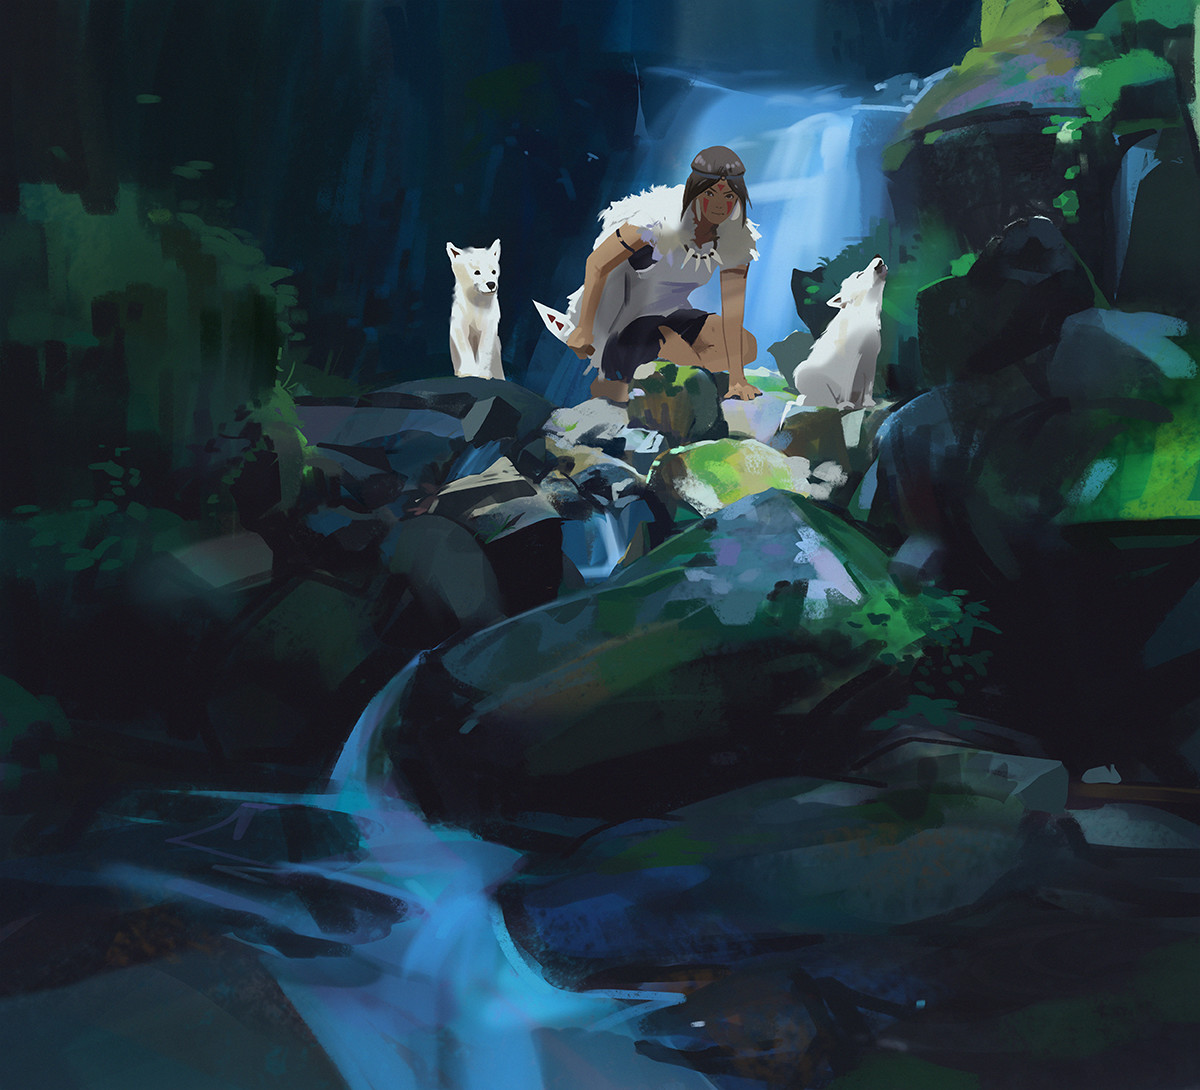 Studio Ghibli Inspired Artwork by Atey Ghailan